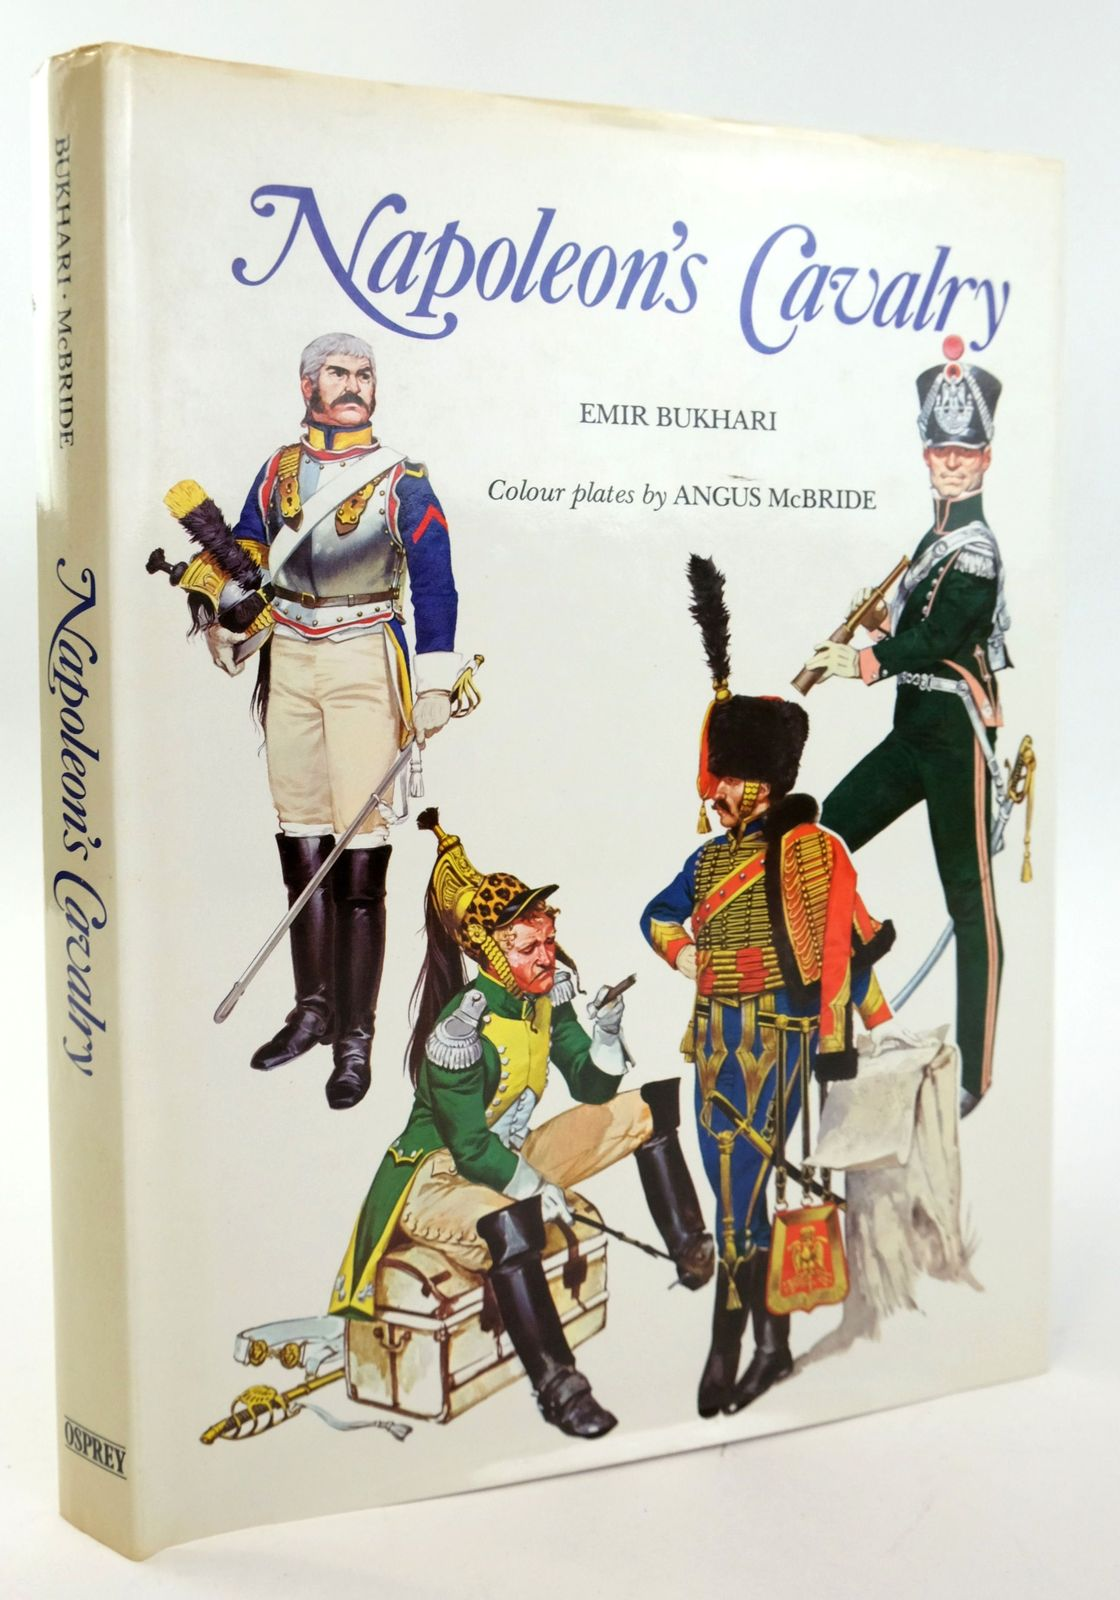 Photo of NAPOLEON'S CAVALRY written by Burkhari, Emir illustrated by McBride, Angus published by Osprey Publishing (STOCK CODE: 1820051)  for sale by Stella & Rose's Books